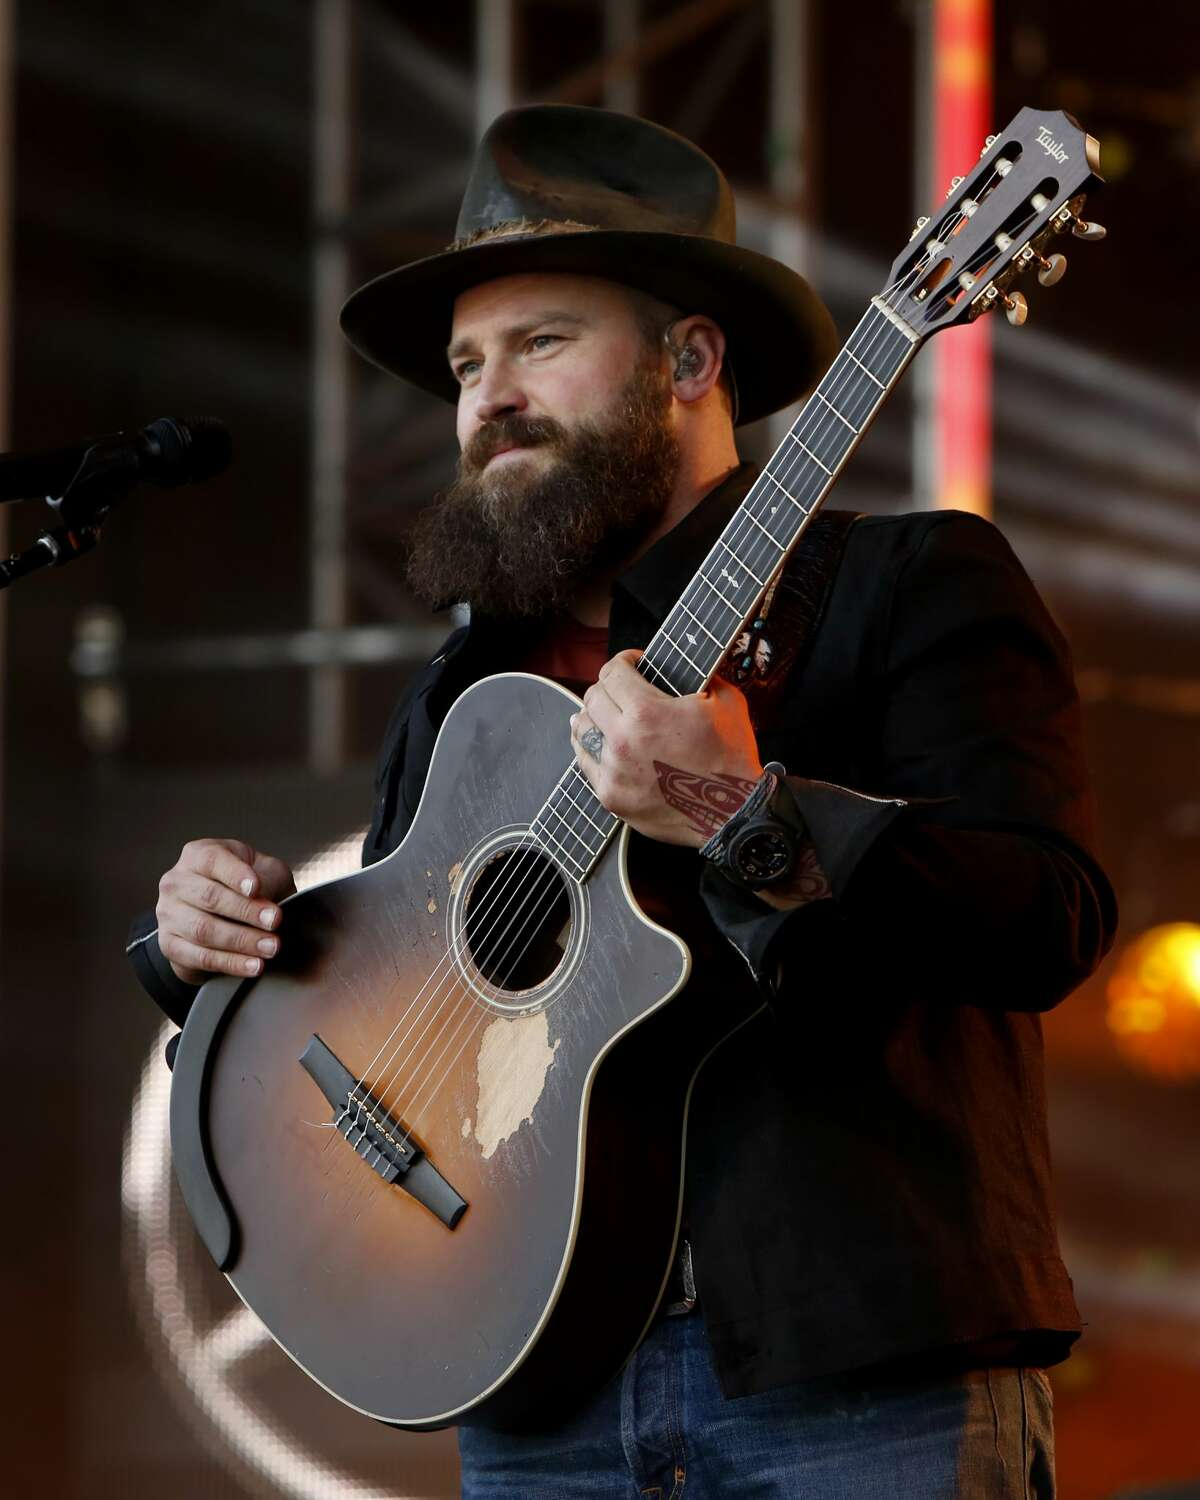 Zac Brown Band:The band will be performing at the Cynthia Woods Mitchell Pavilion Saturday, Sept. 16 at 7 p.m. More Details: www.woodlandscenter.org